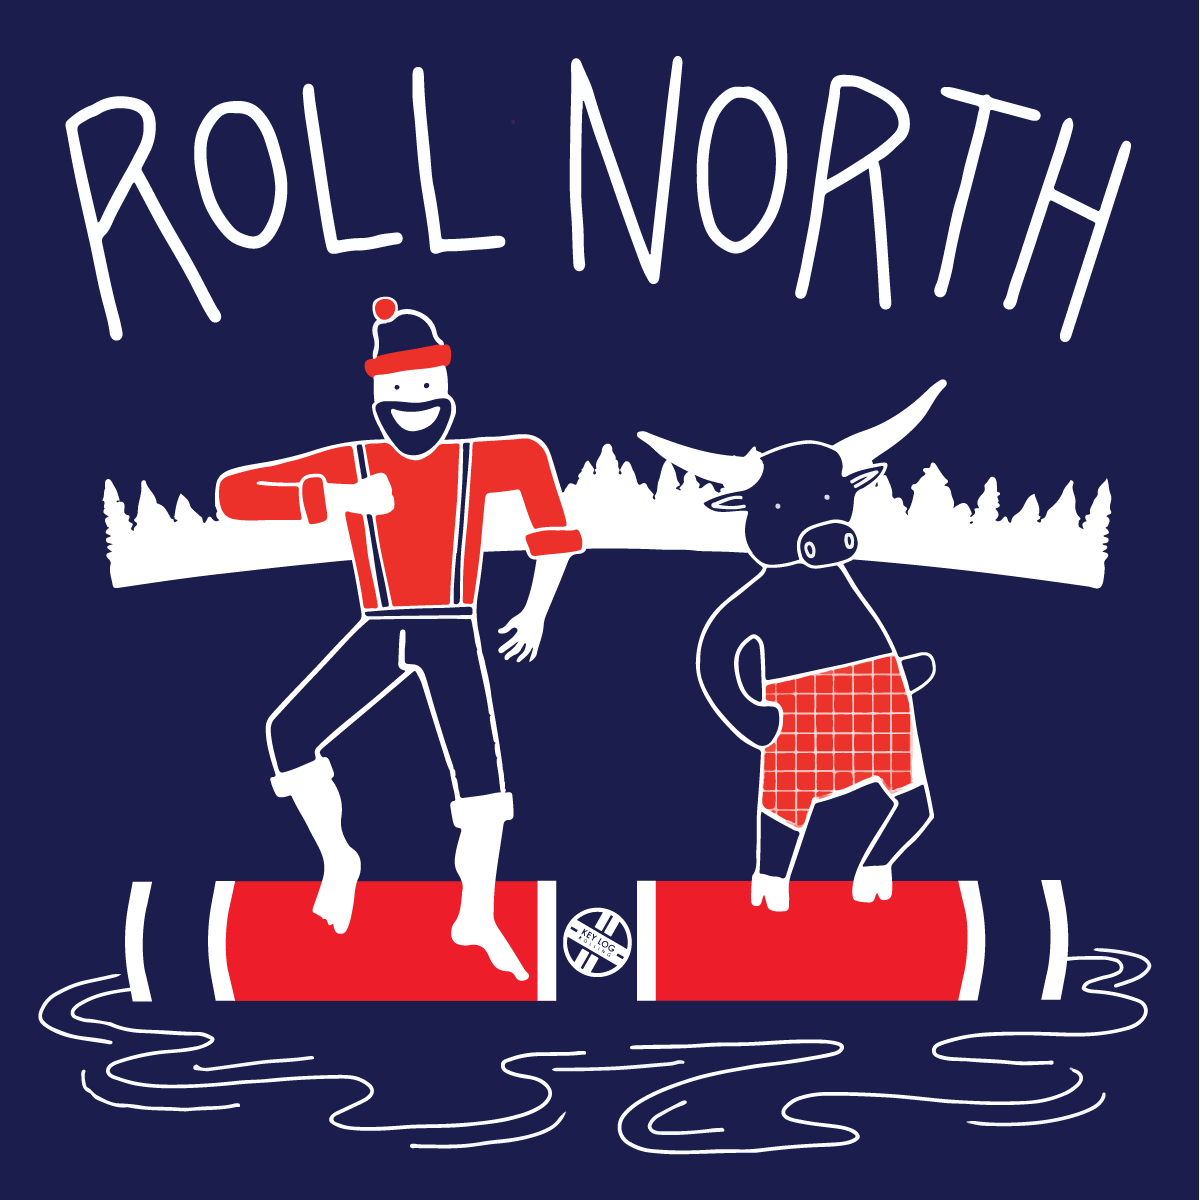 Roll North Tee - Key Log Rolling